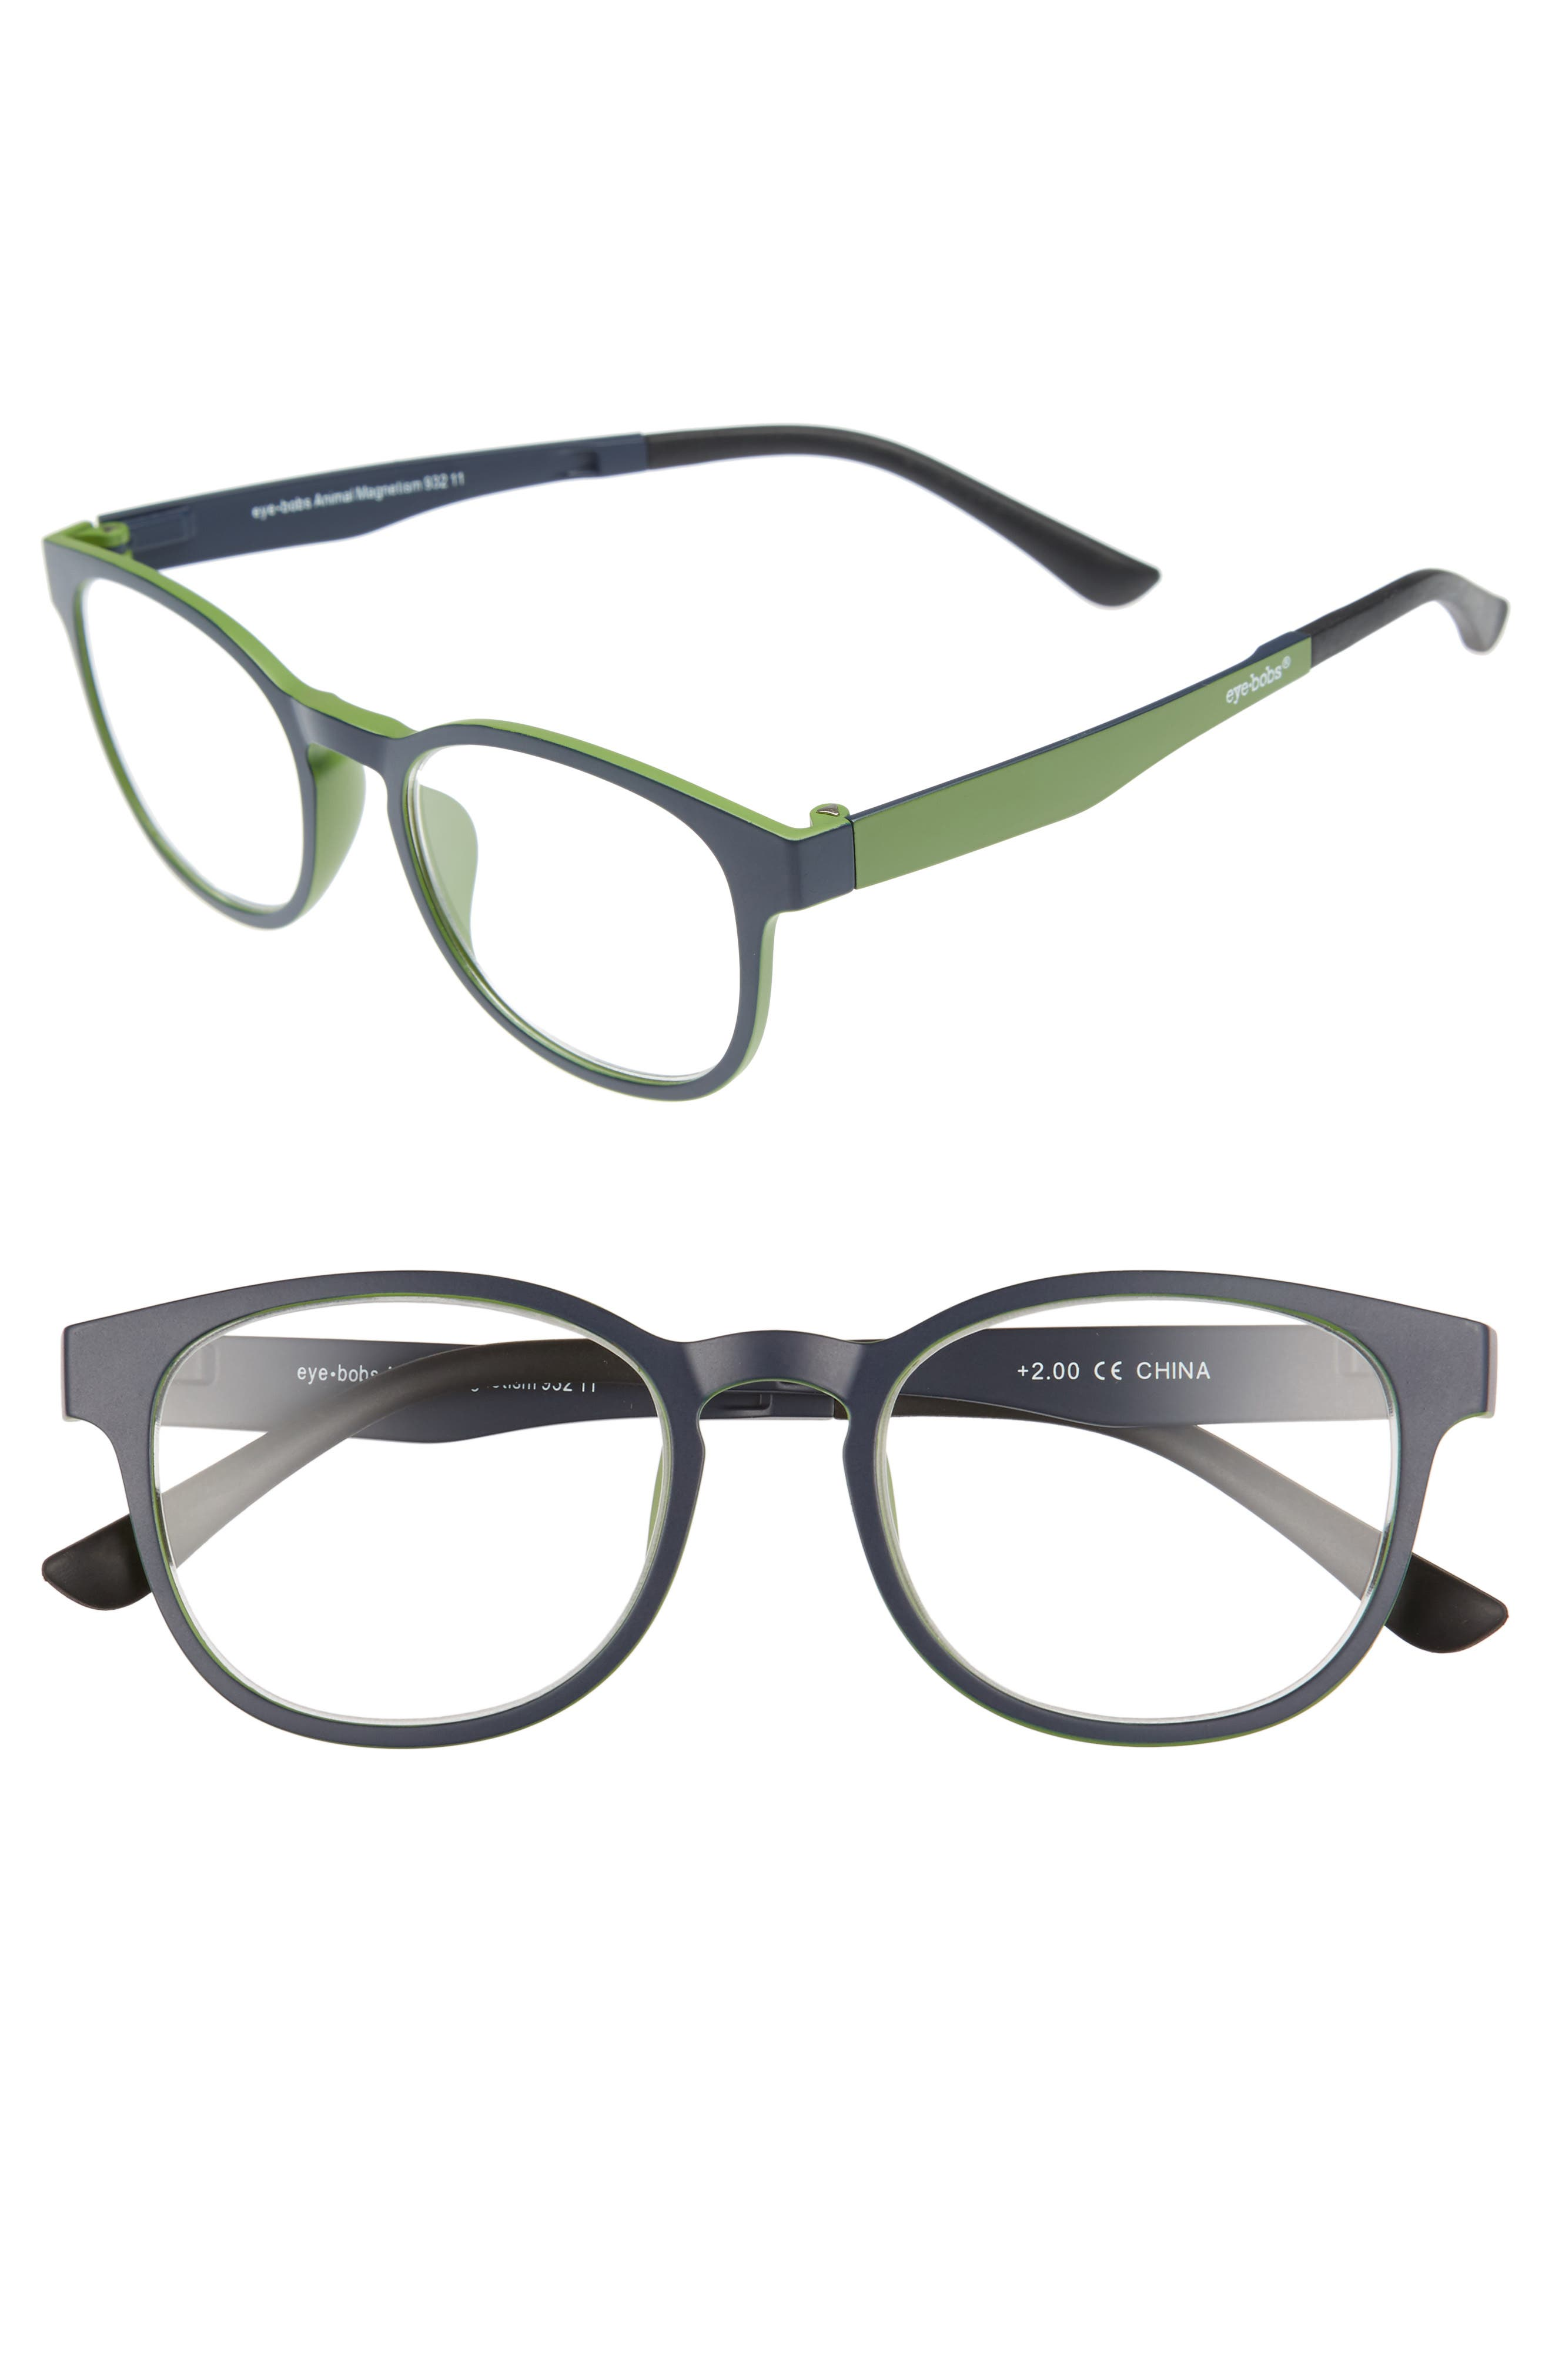 Eyebobs Animal Magnetism 50mm Reading Glasses with Sun Clip